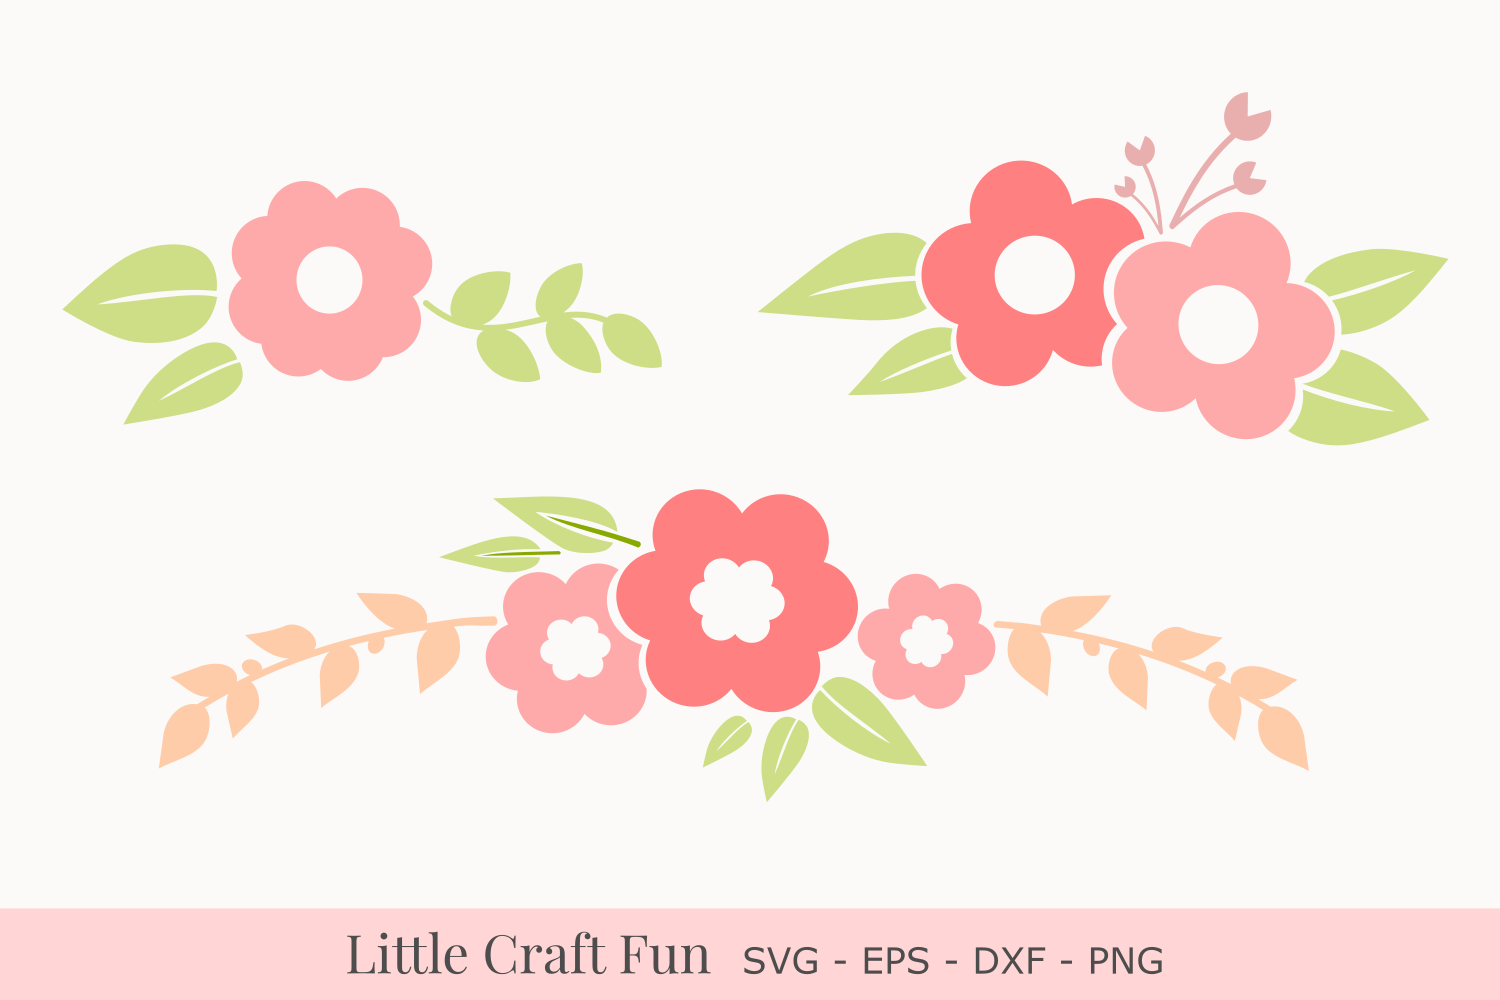 Flowers Svg, Florals Svg, Flower Bouquets Svg example image 1